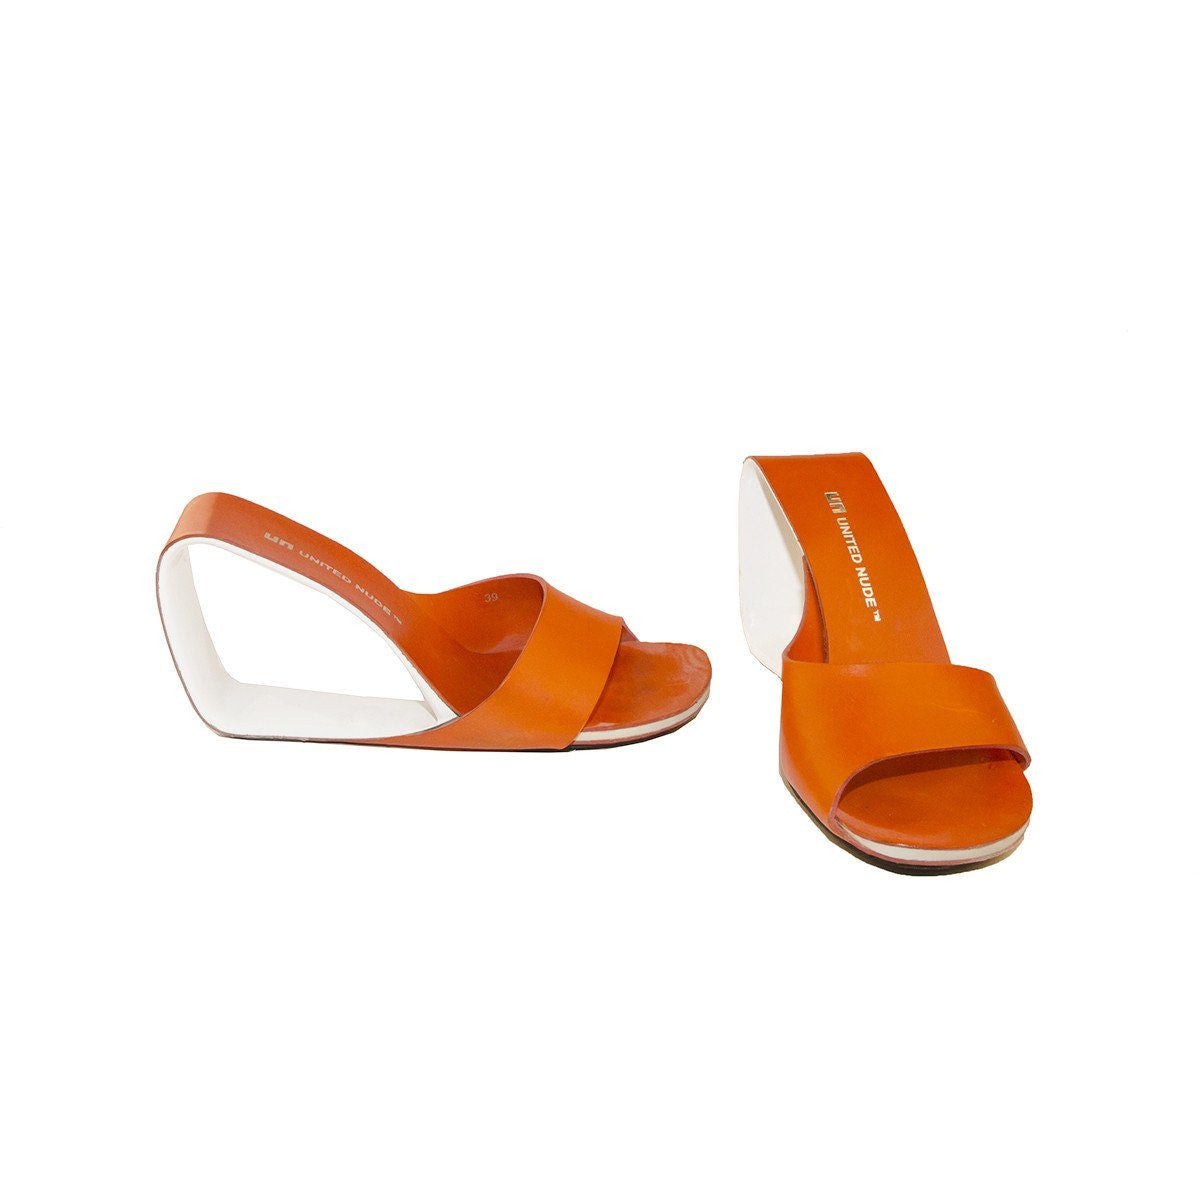 United Nude Mobius Open Wedge Shoe, Orange & White, Size 9